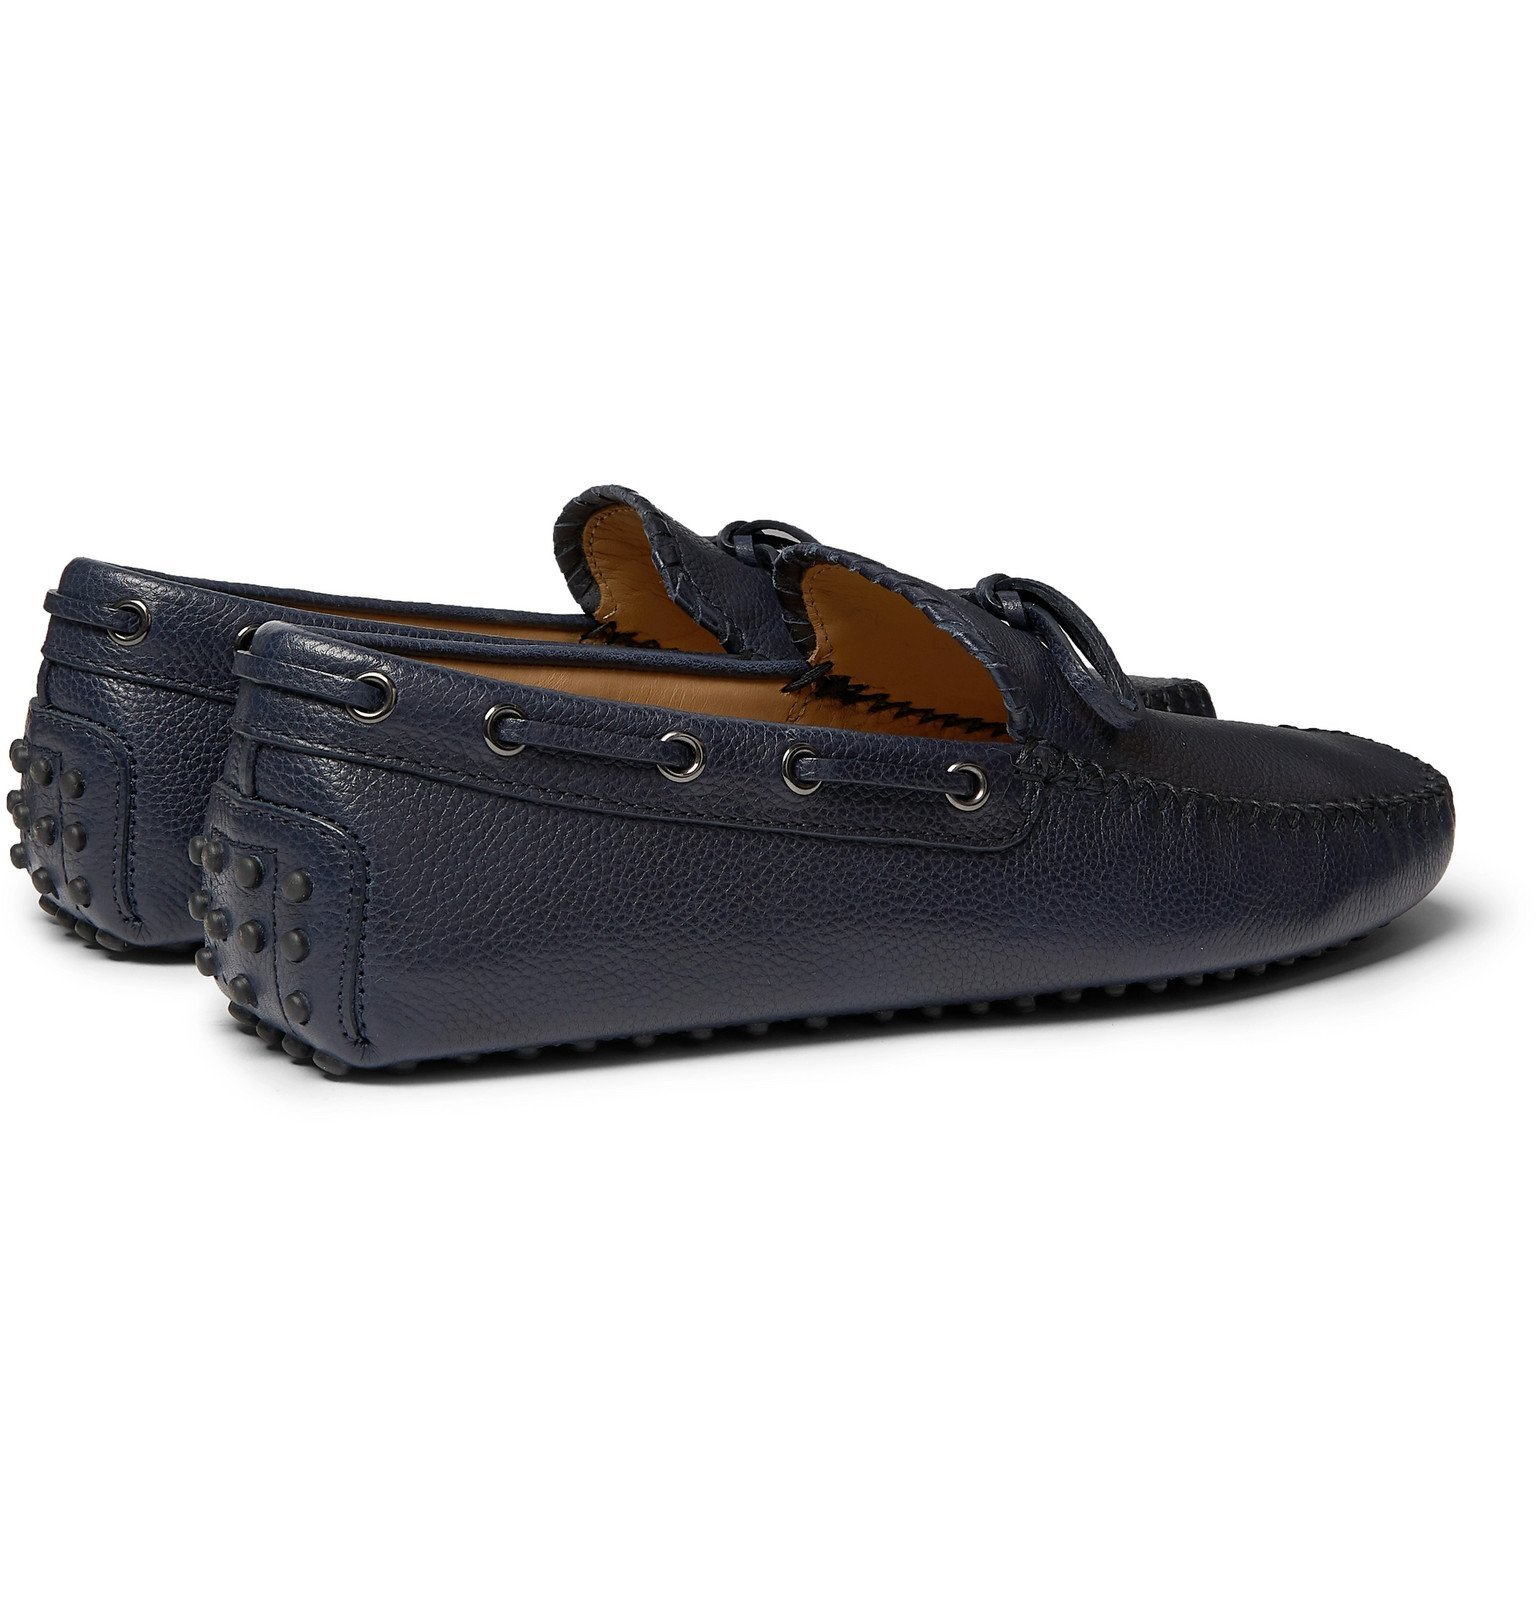 Tod's - Gommino Full-Grain Leather Driving Shoes - Blue